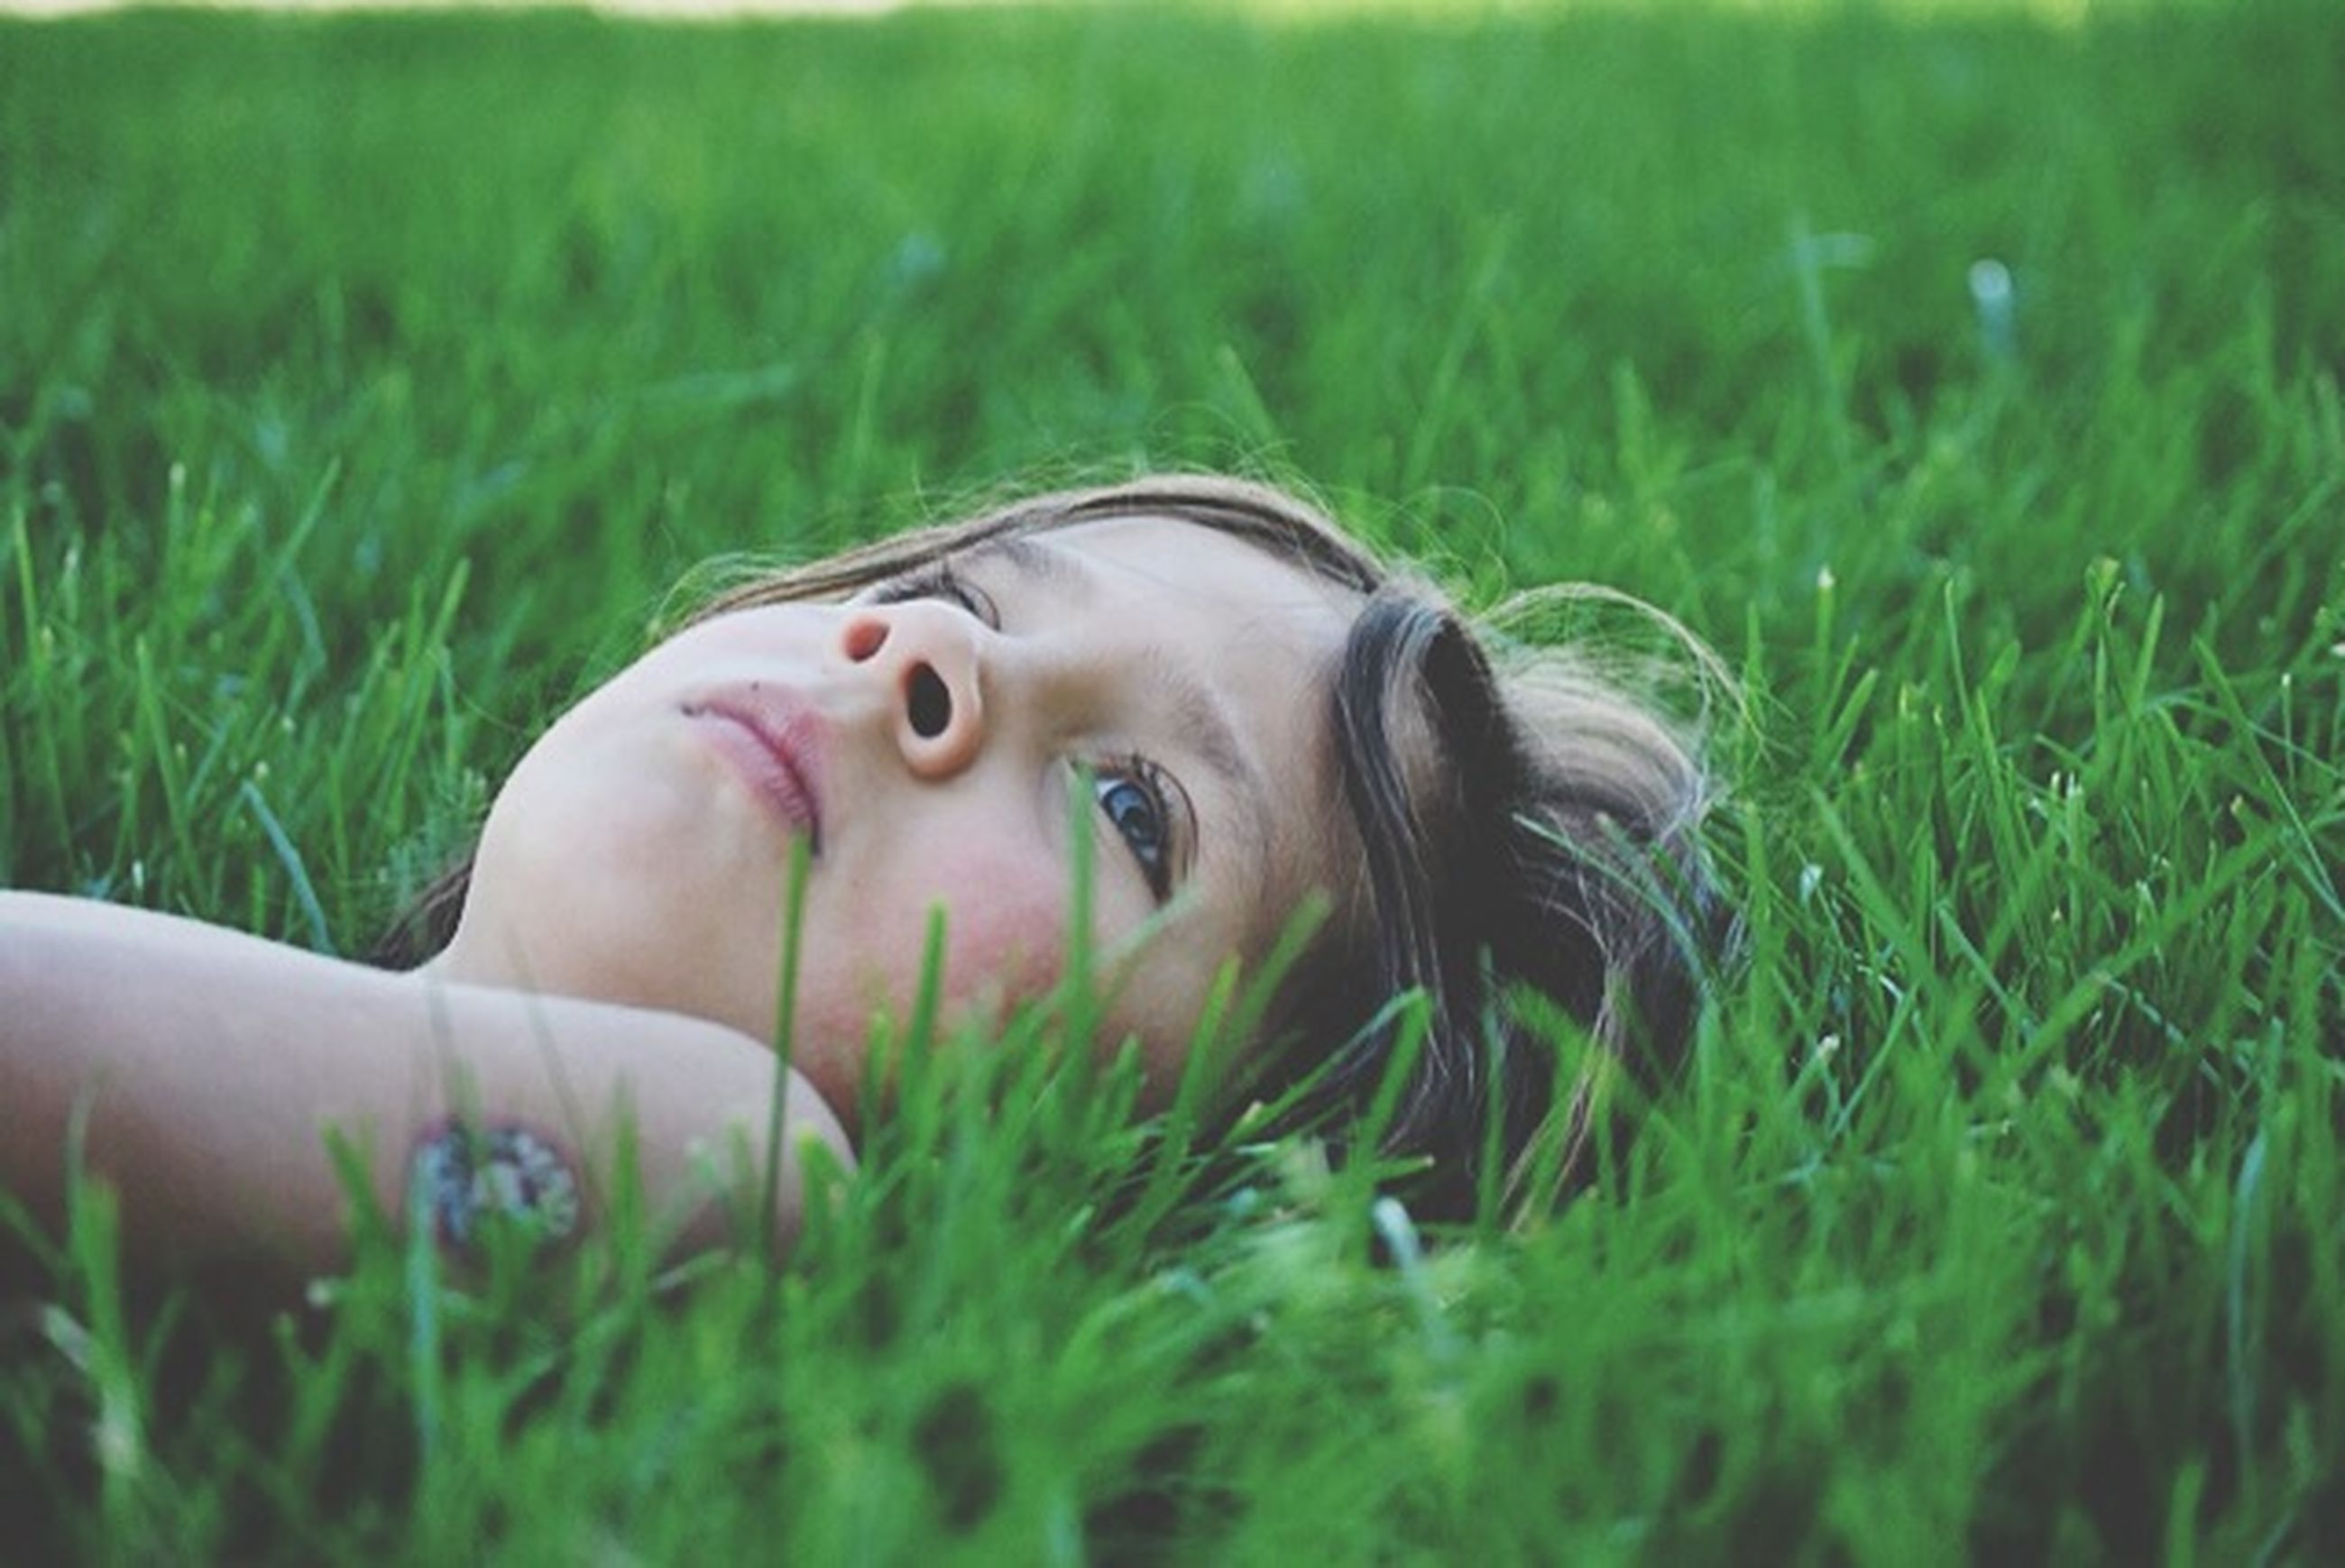 grass, person, field, portrait, young adult, looking at camera, grassy, young women, lifestyles, headshot, leisure activity, relaxation, green color, close-up, focus on foreground, day, head and shoulders